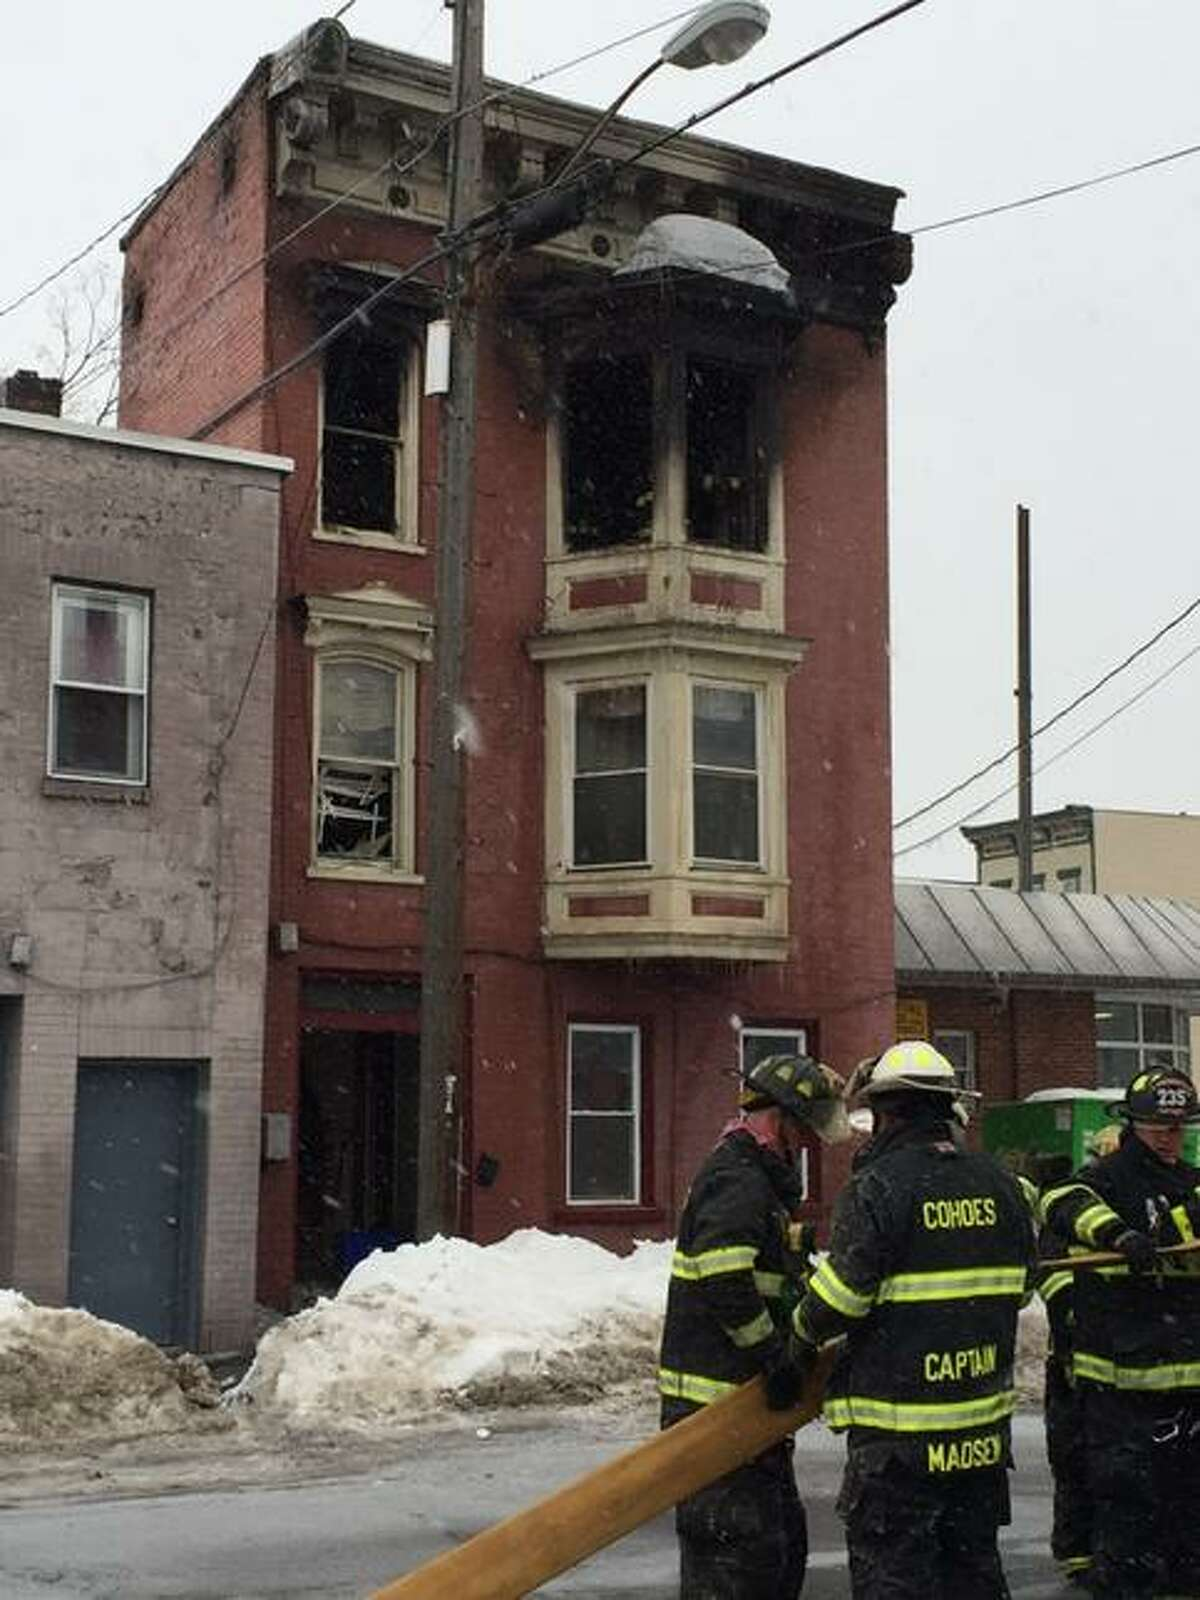 A fire tore through the vacant third floor of 23 Columbia St. in Cohoes on Saturday, Feb. 14, 2015. A second floor tennant and his dog escaped unharmed. (Jordan Carleo-Evangelist/Times Union)